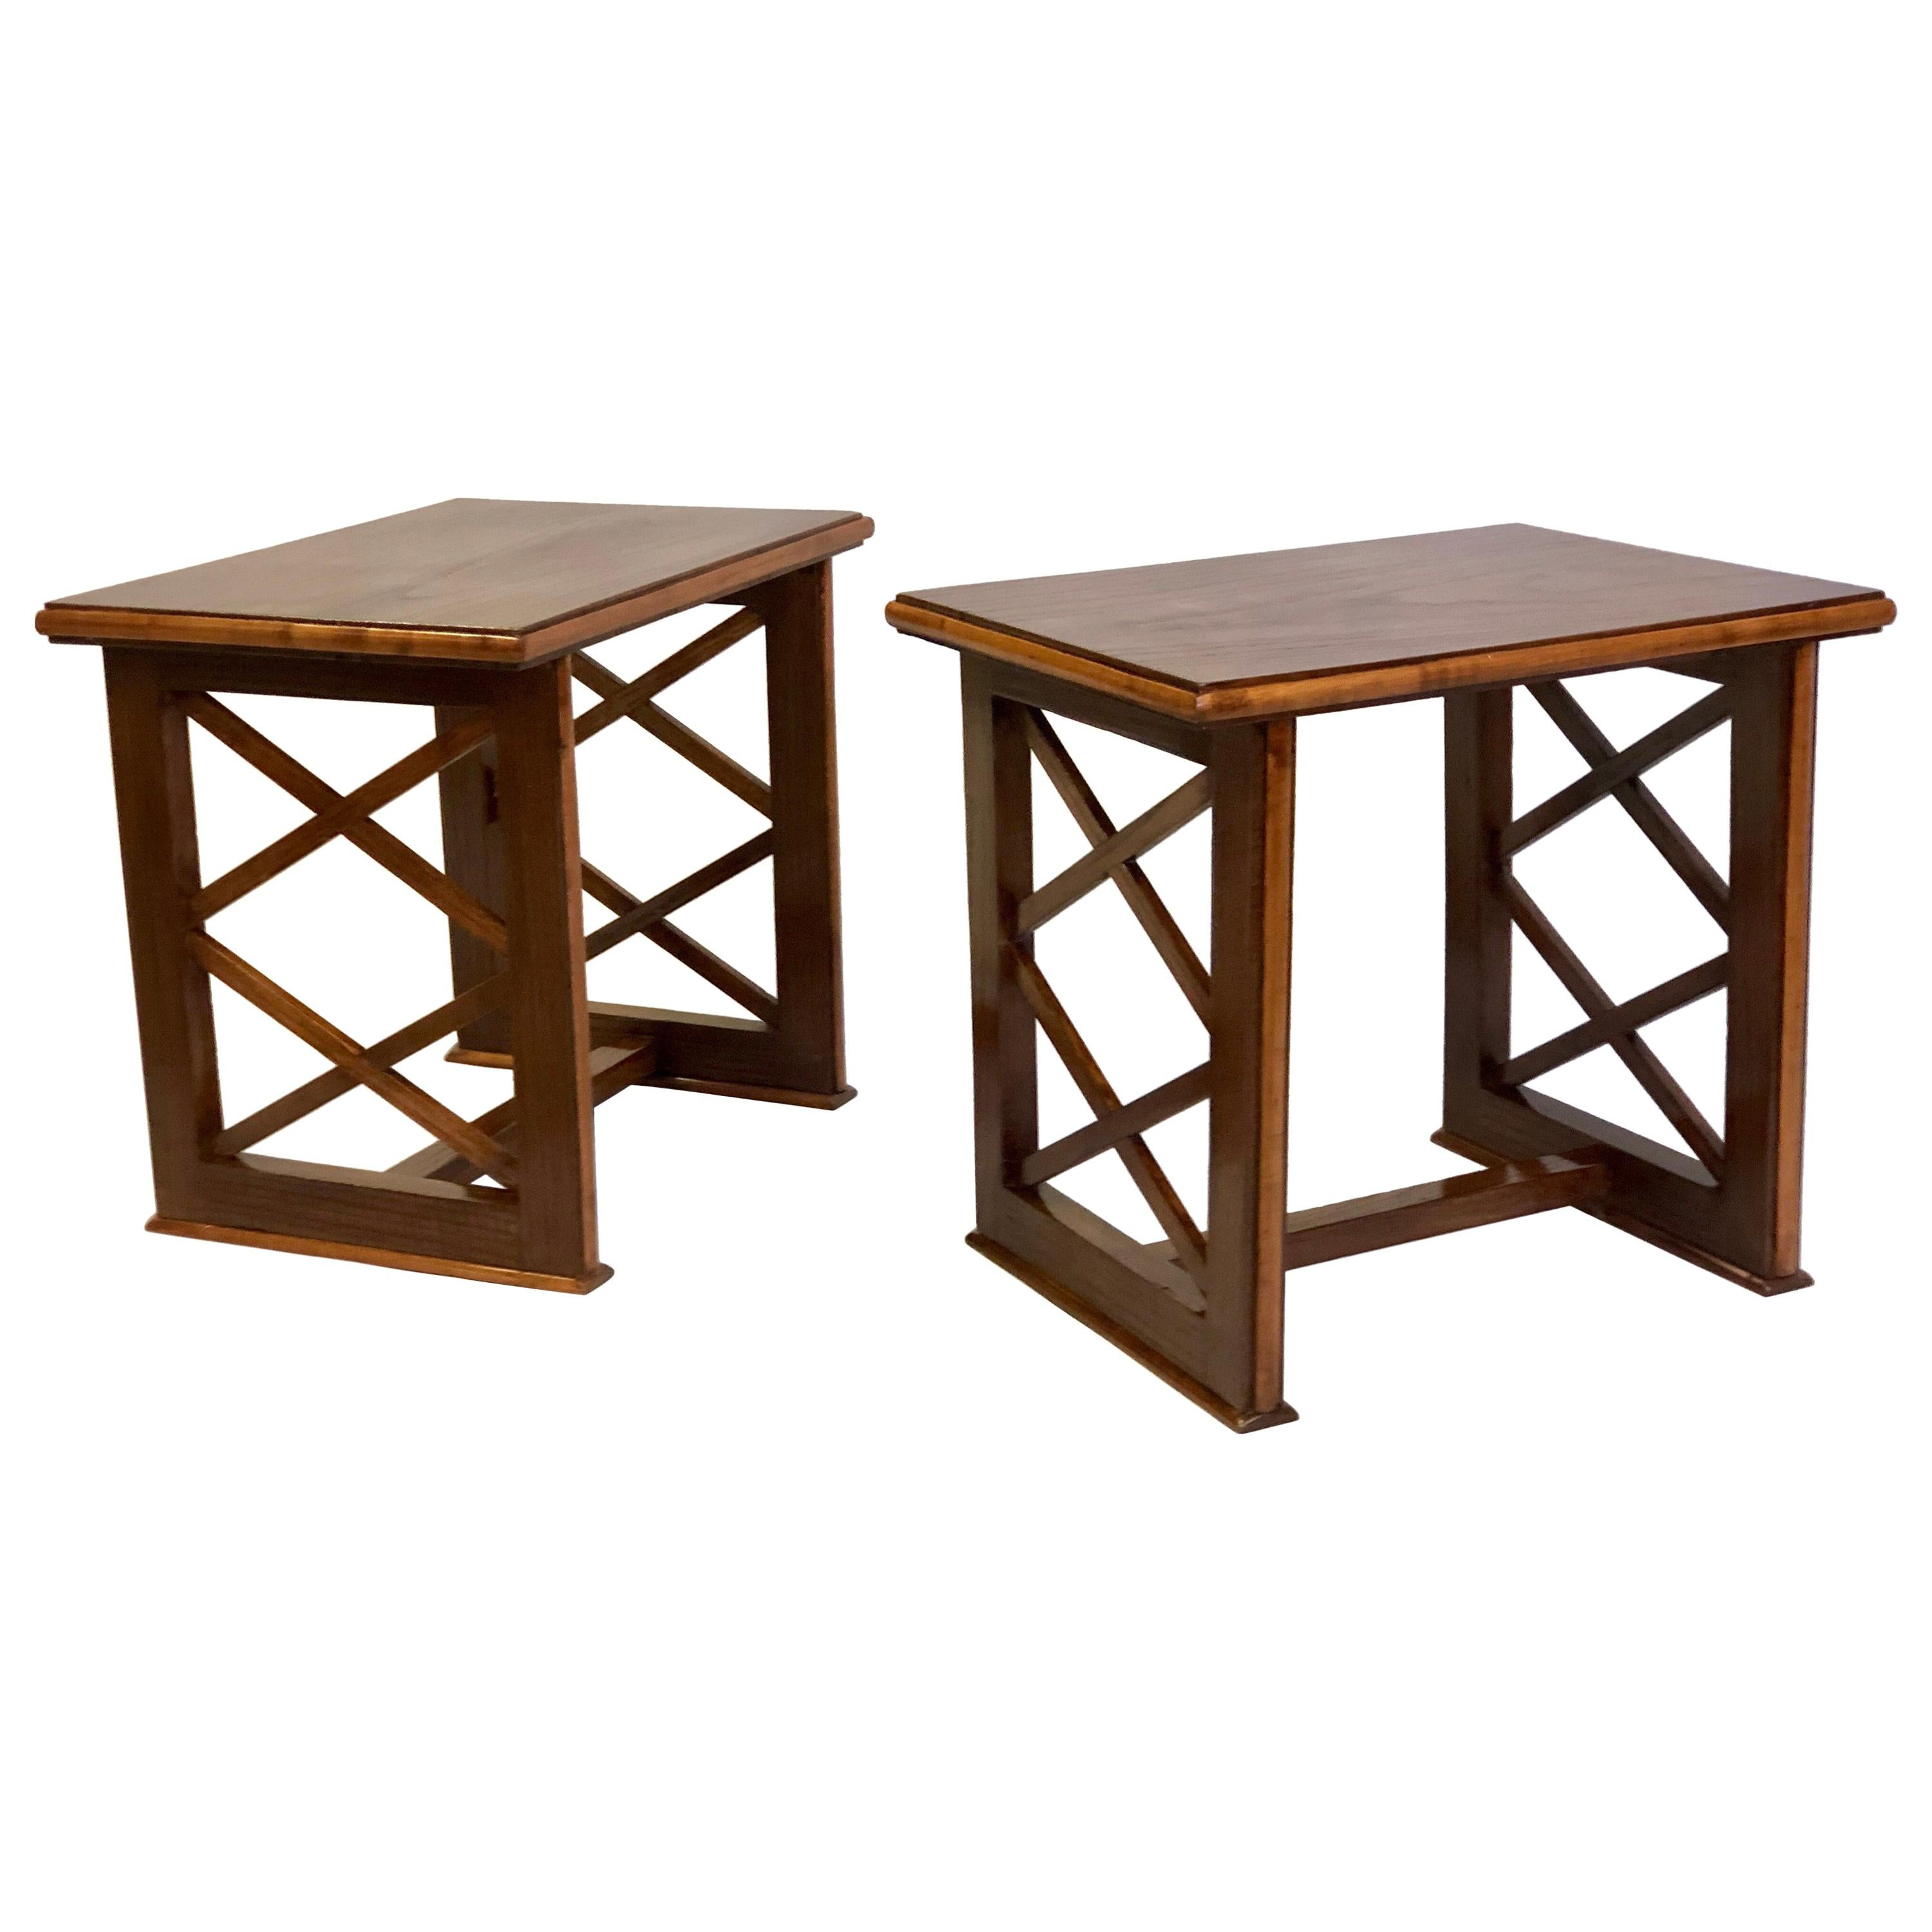 Pair of French Modern Neoclassical Wood End or Side Tables, Andre Arbus